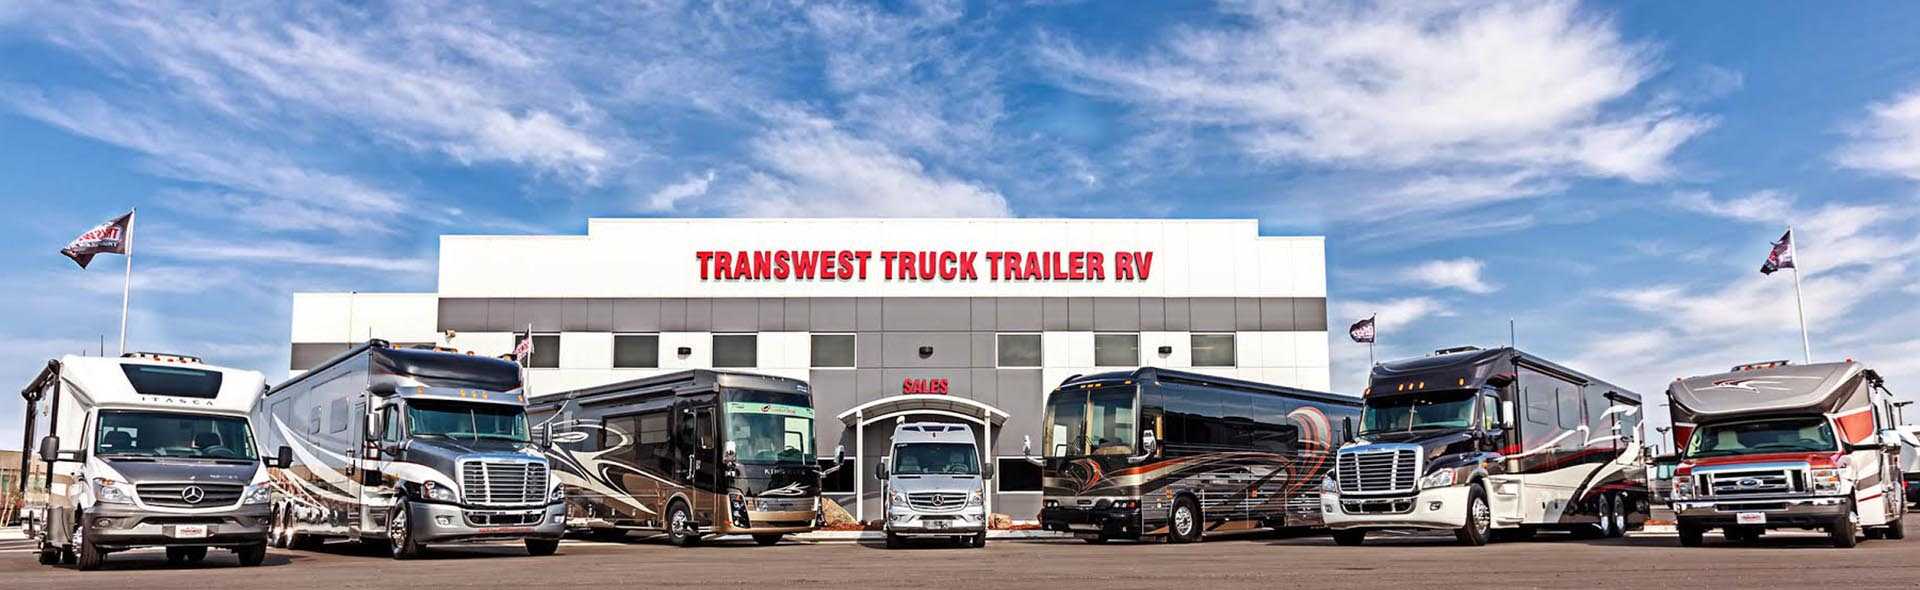 its-all-about-the-customer-rv-lineup